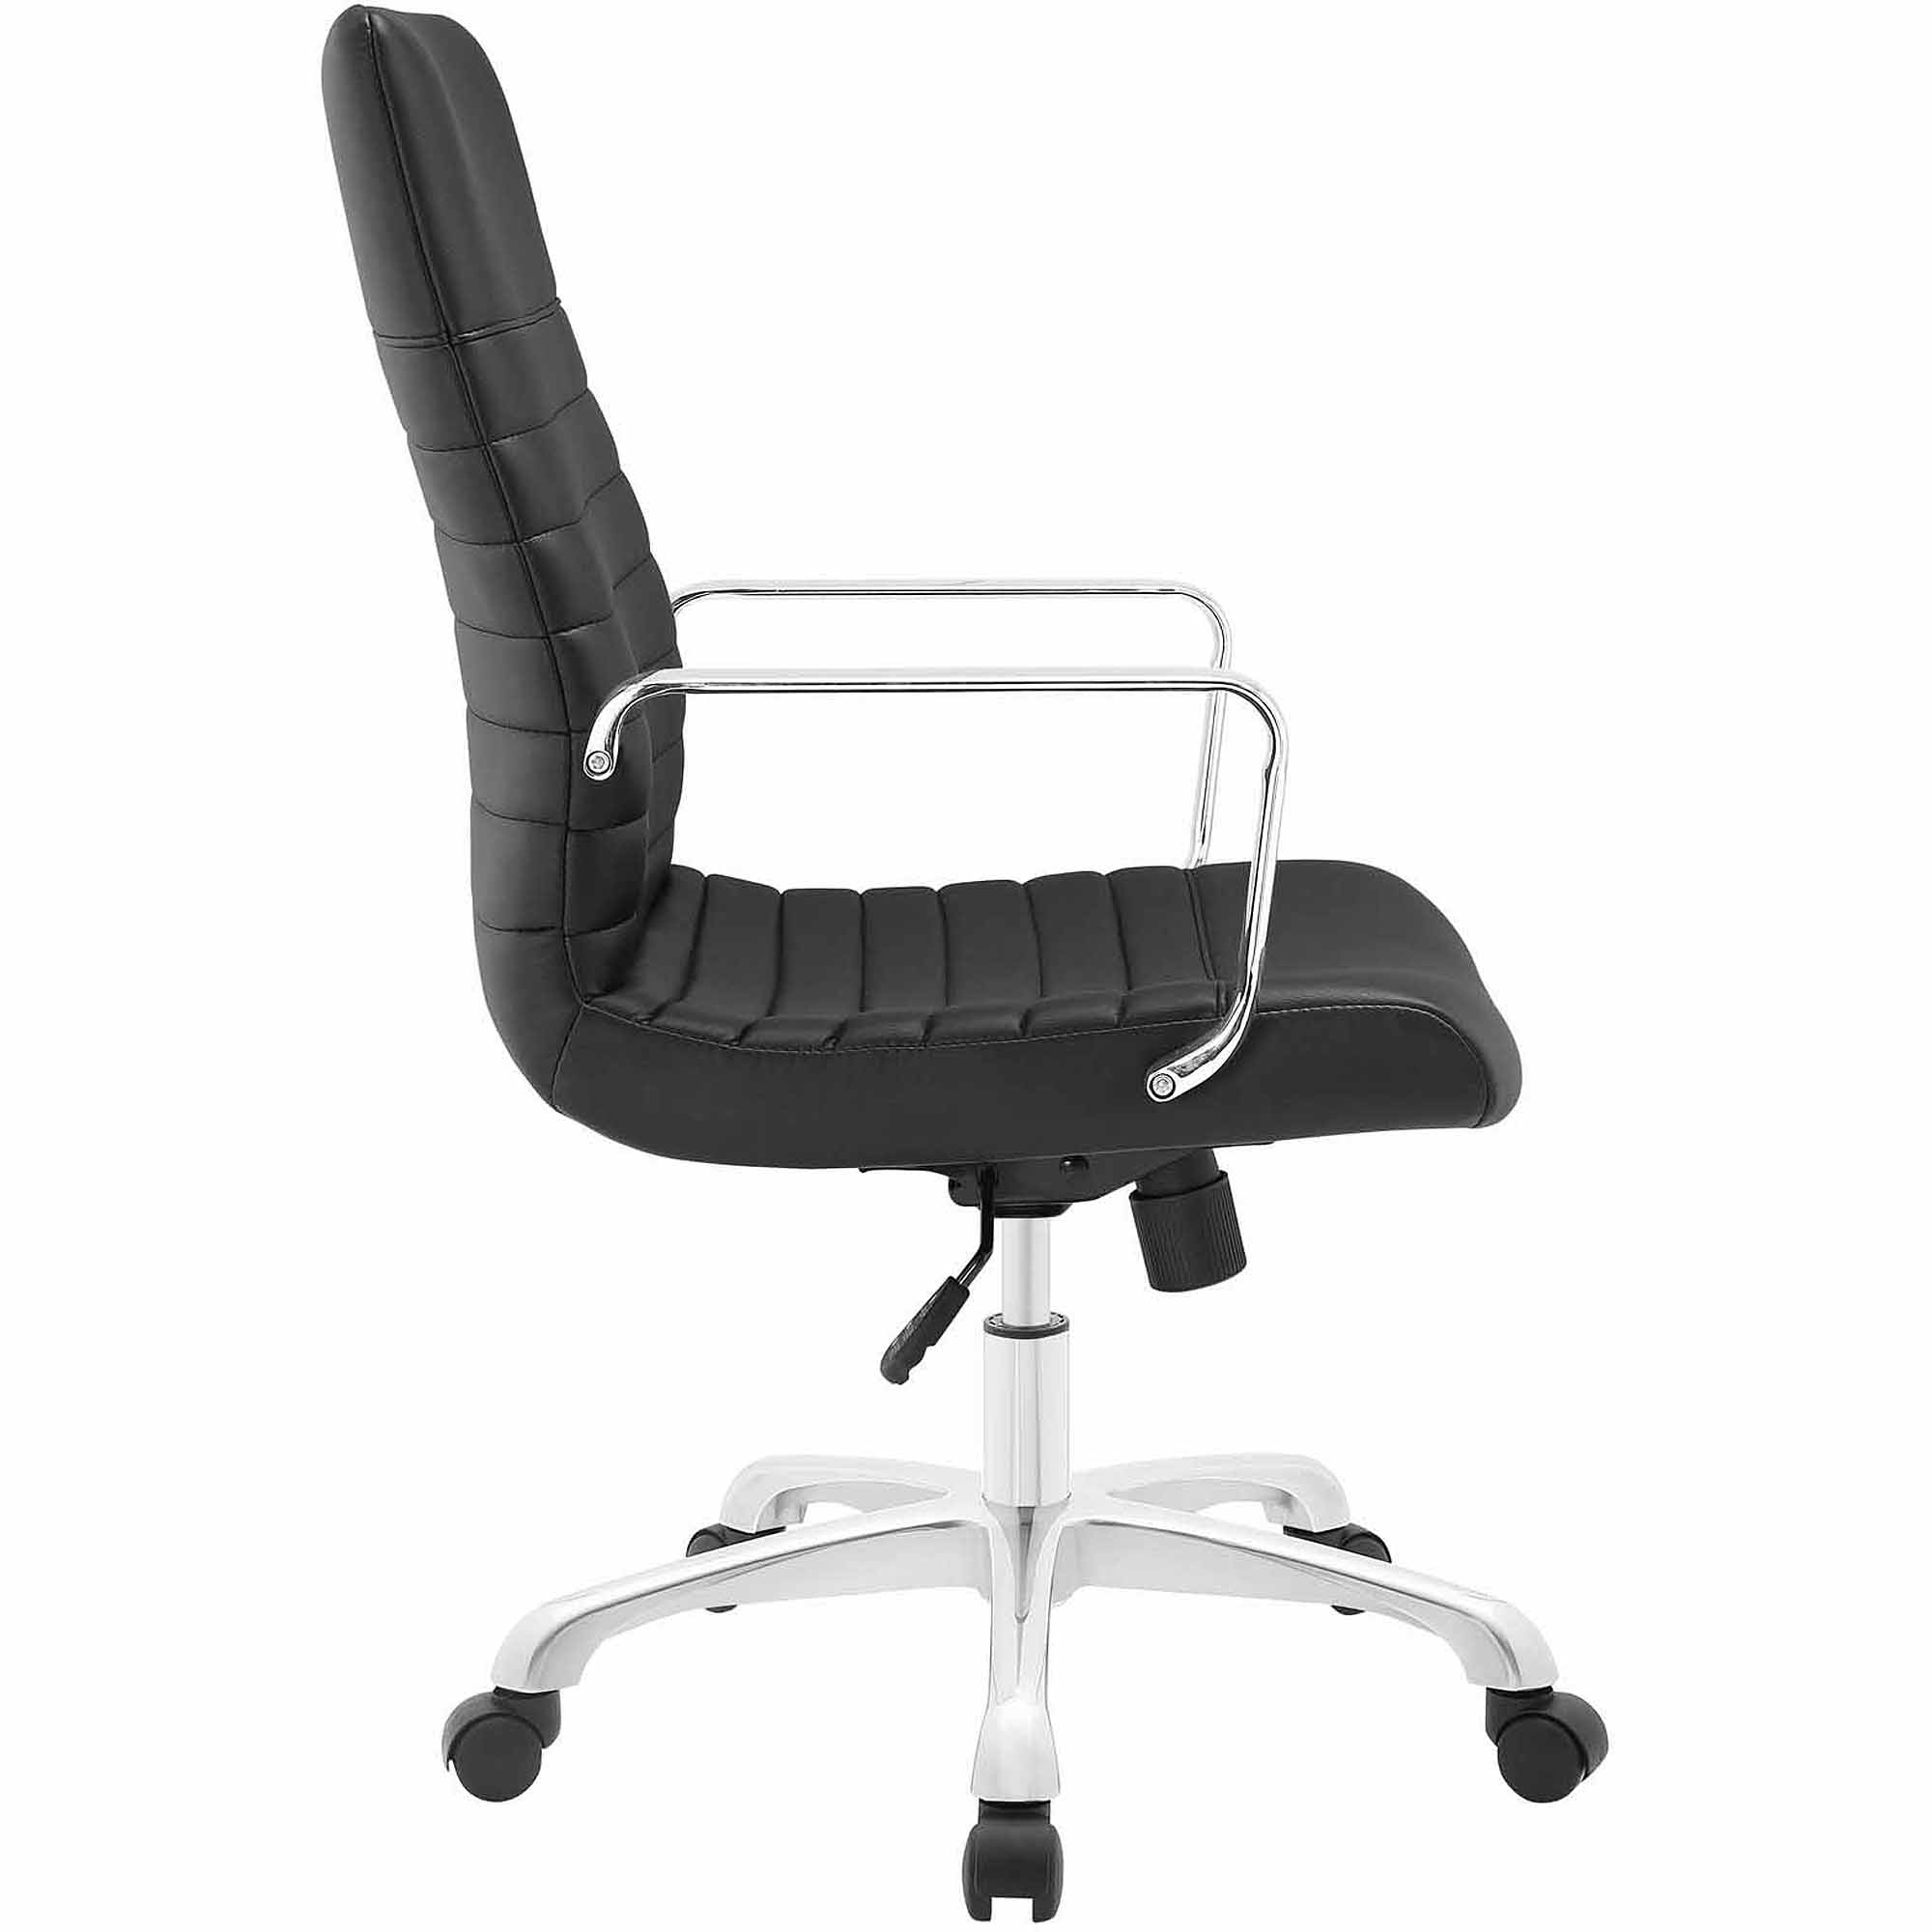 Modway Finesse Mid Back Leatherette fice Chair Multiple Colors